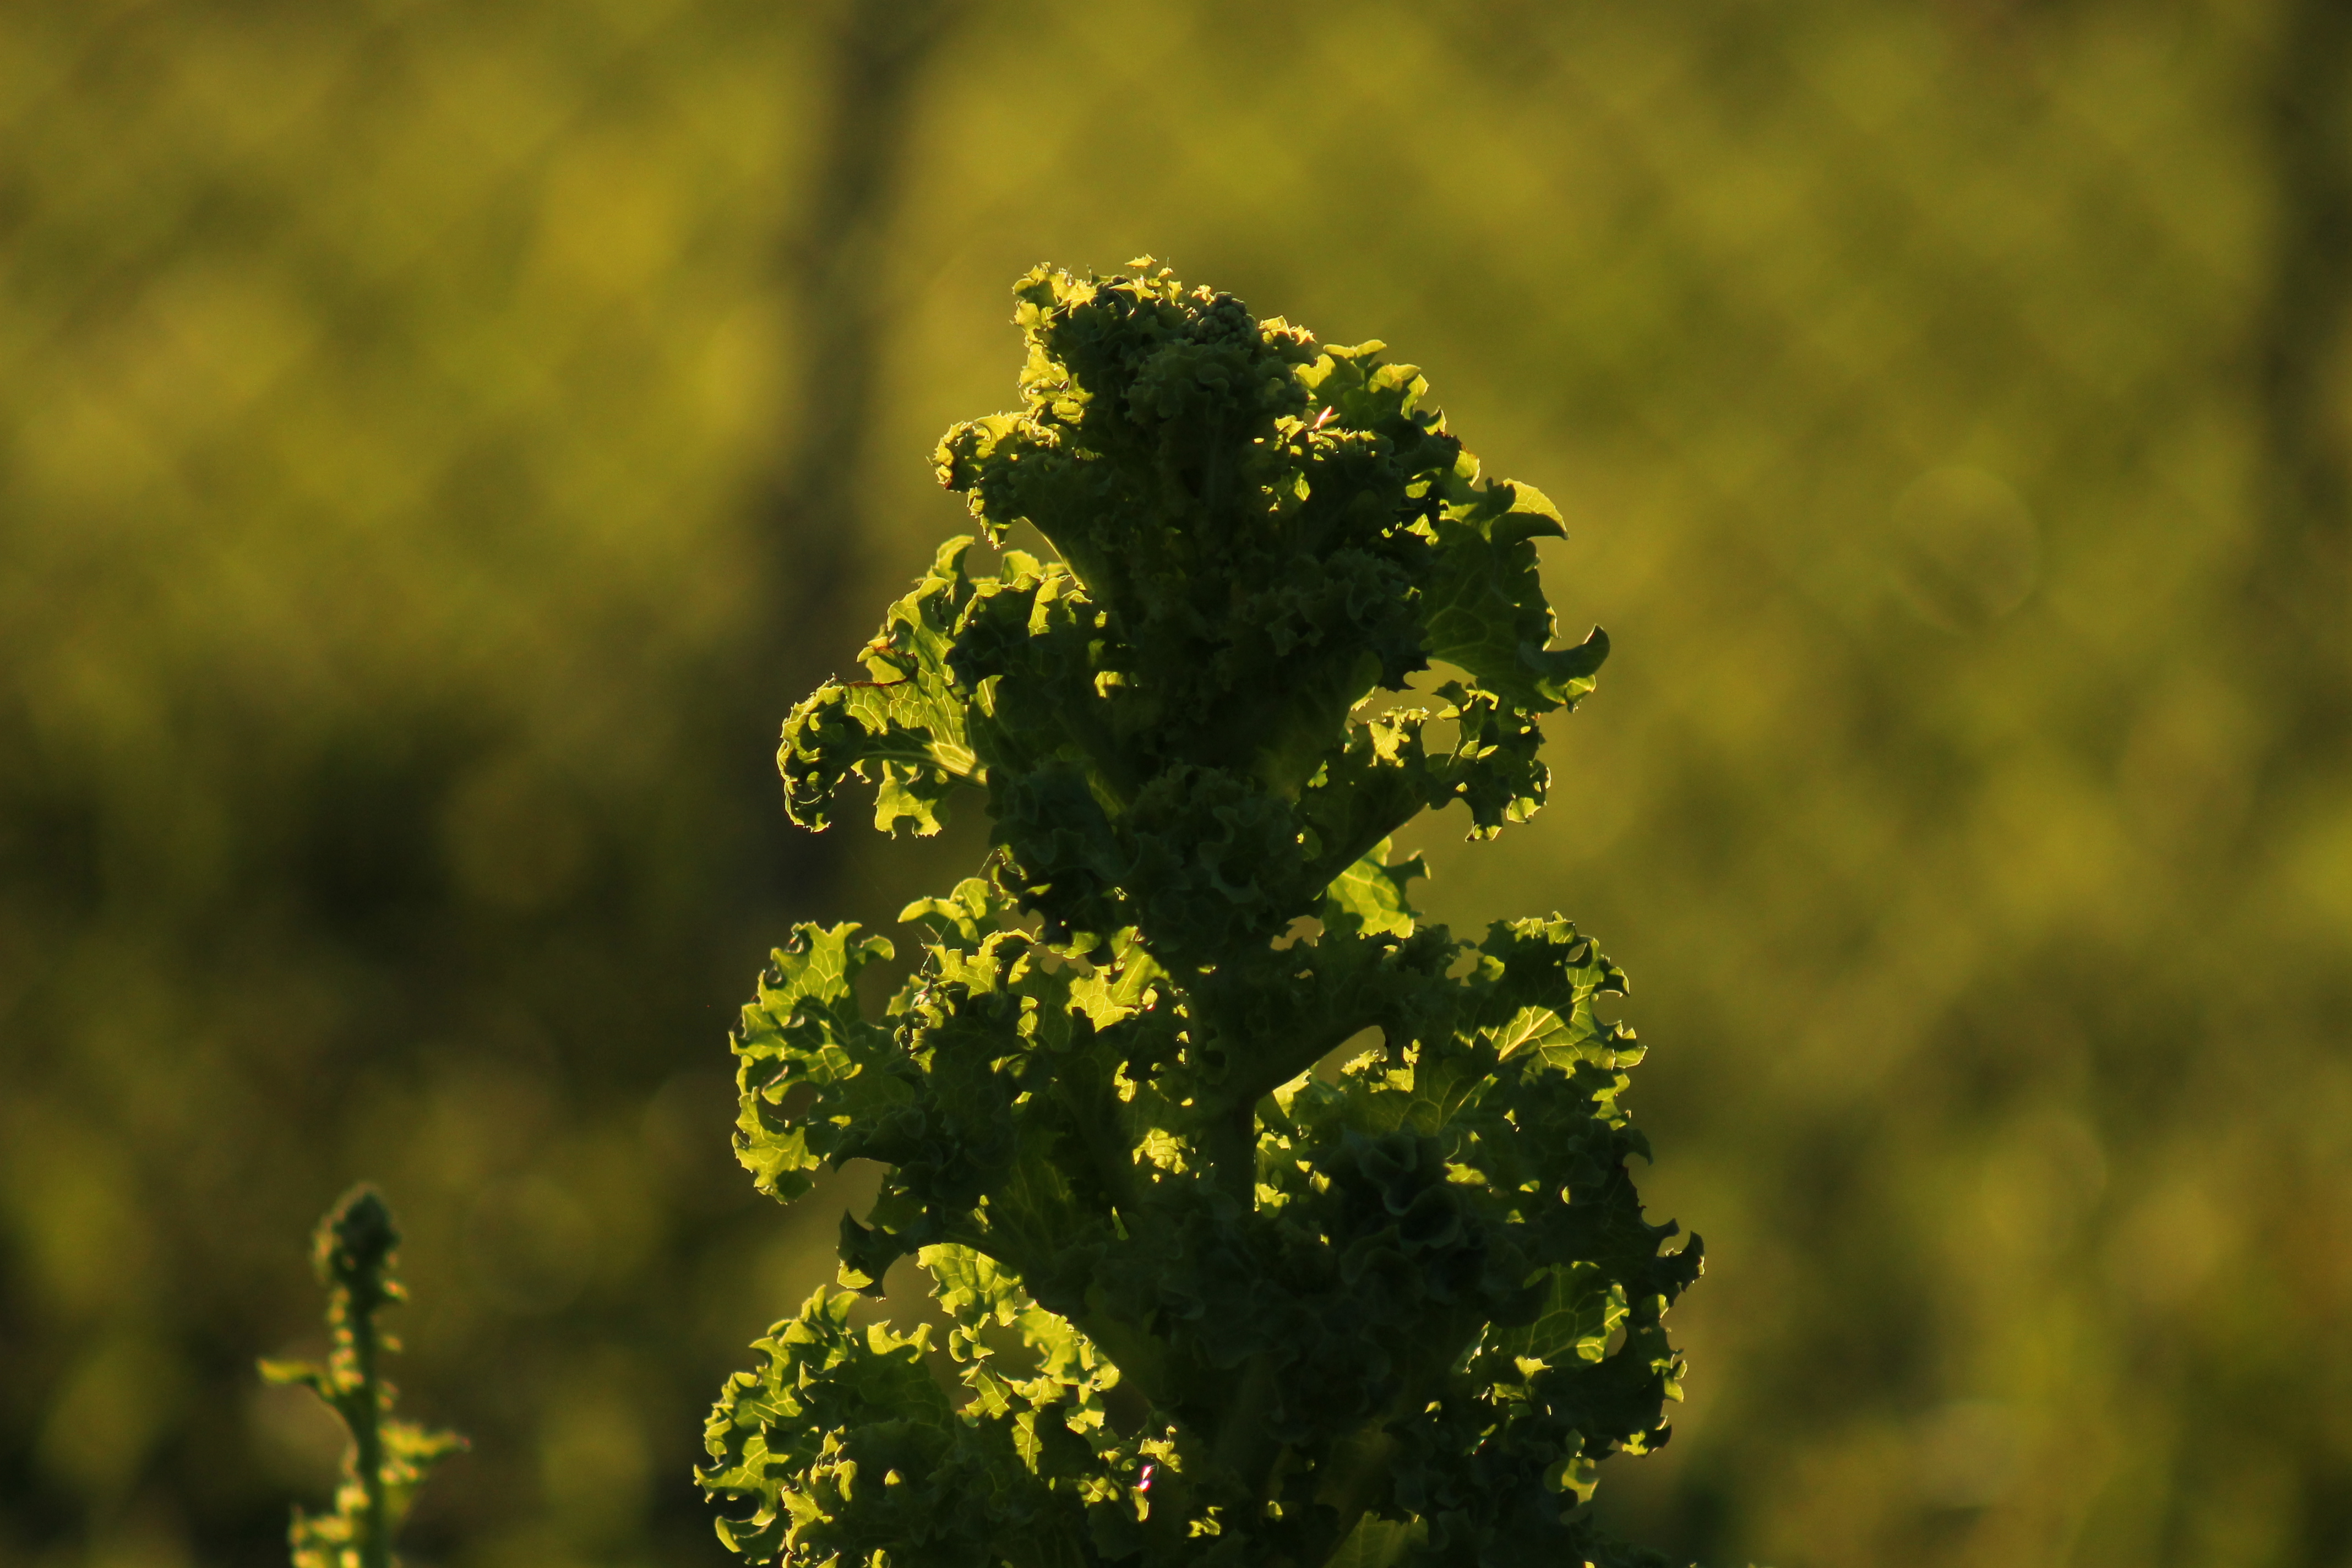 Sun lit lettuce with a blurred wire fence backdrop